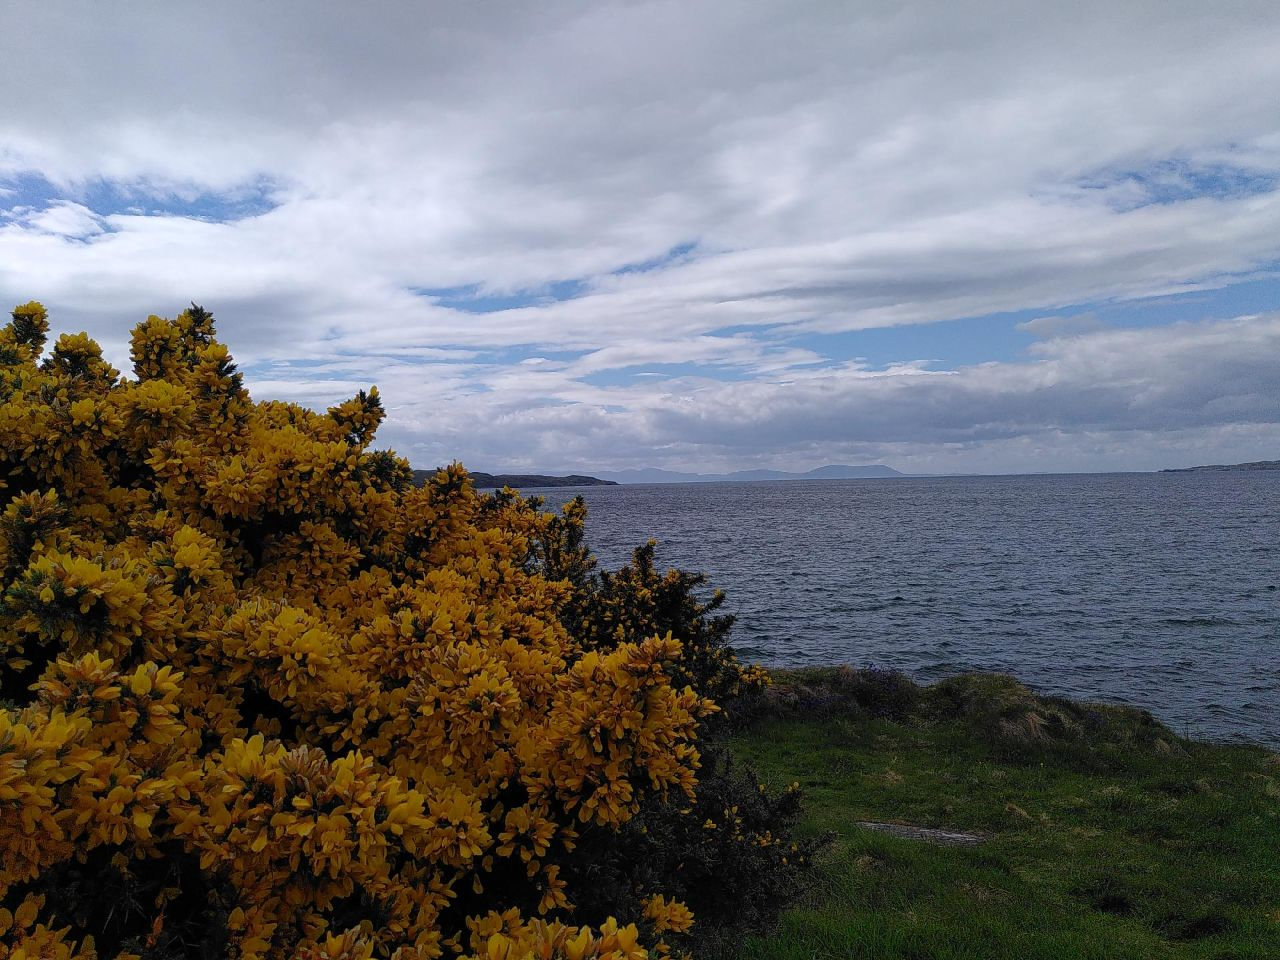 A gorse bush (Ulex europaeus) abundant with bright, little, flowers giving a coconut smell, sits in the left of the image. Water stretches across to the horizon, Isle of Skye pops its head above the horizon.